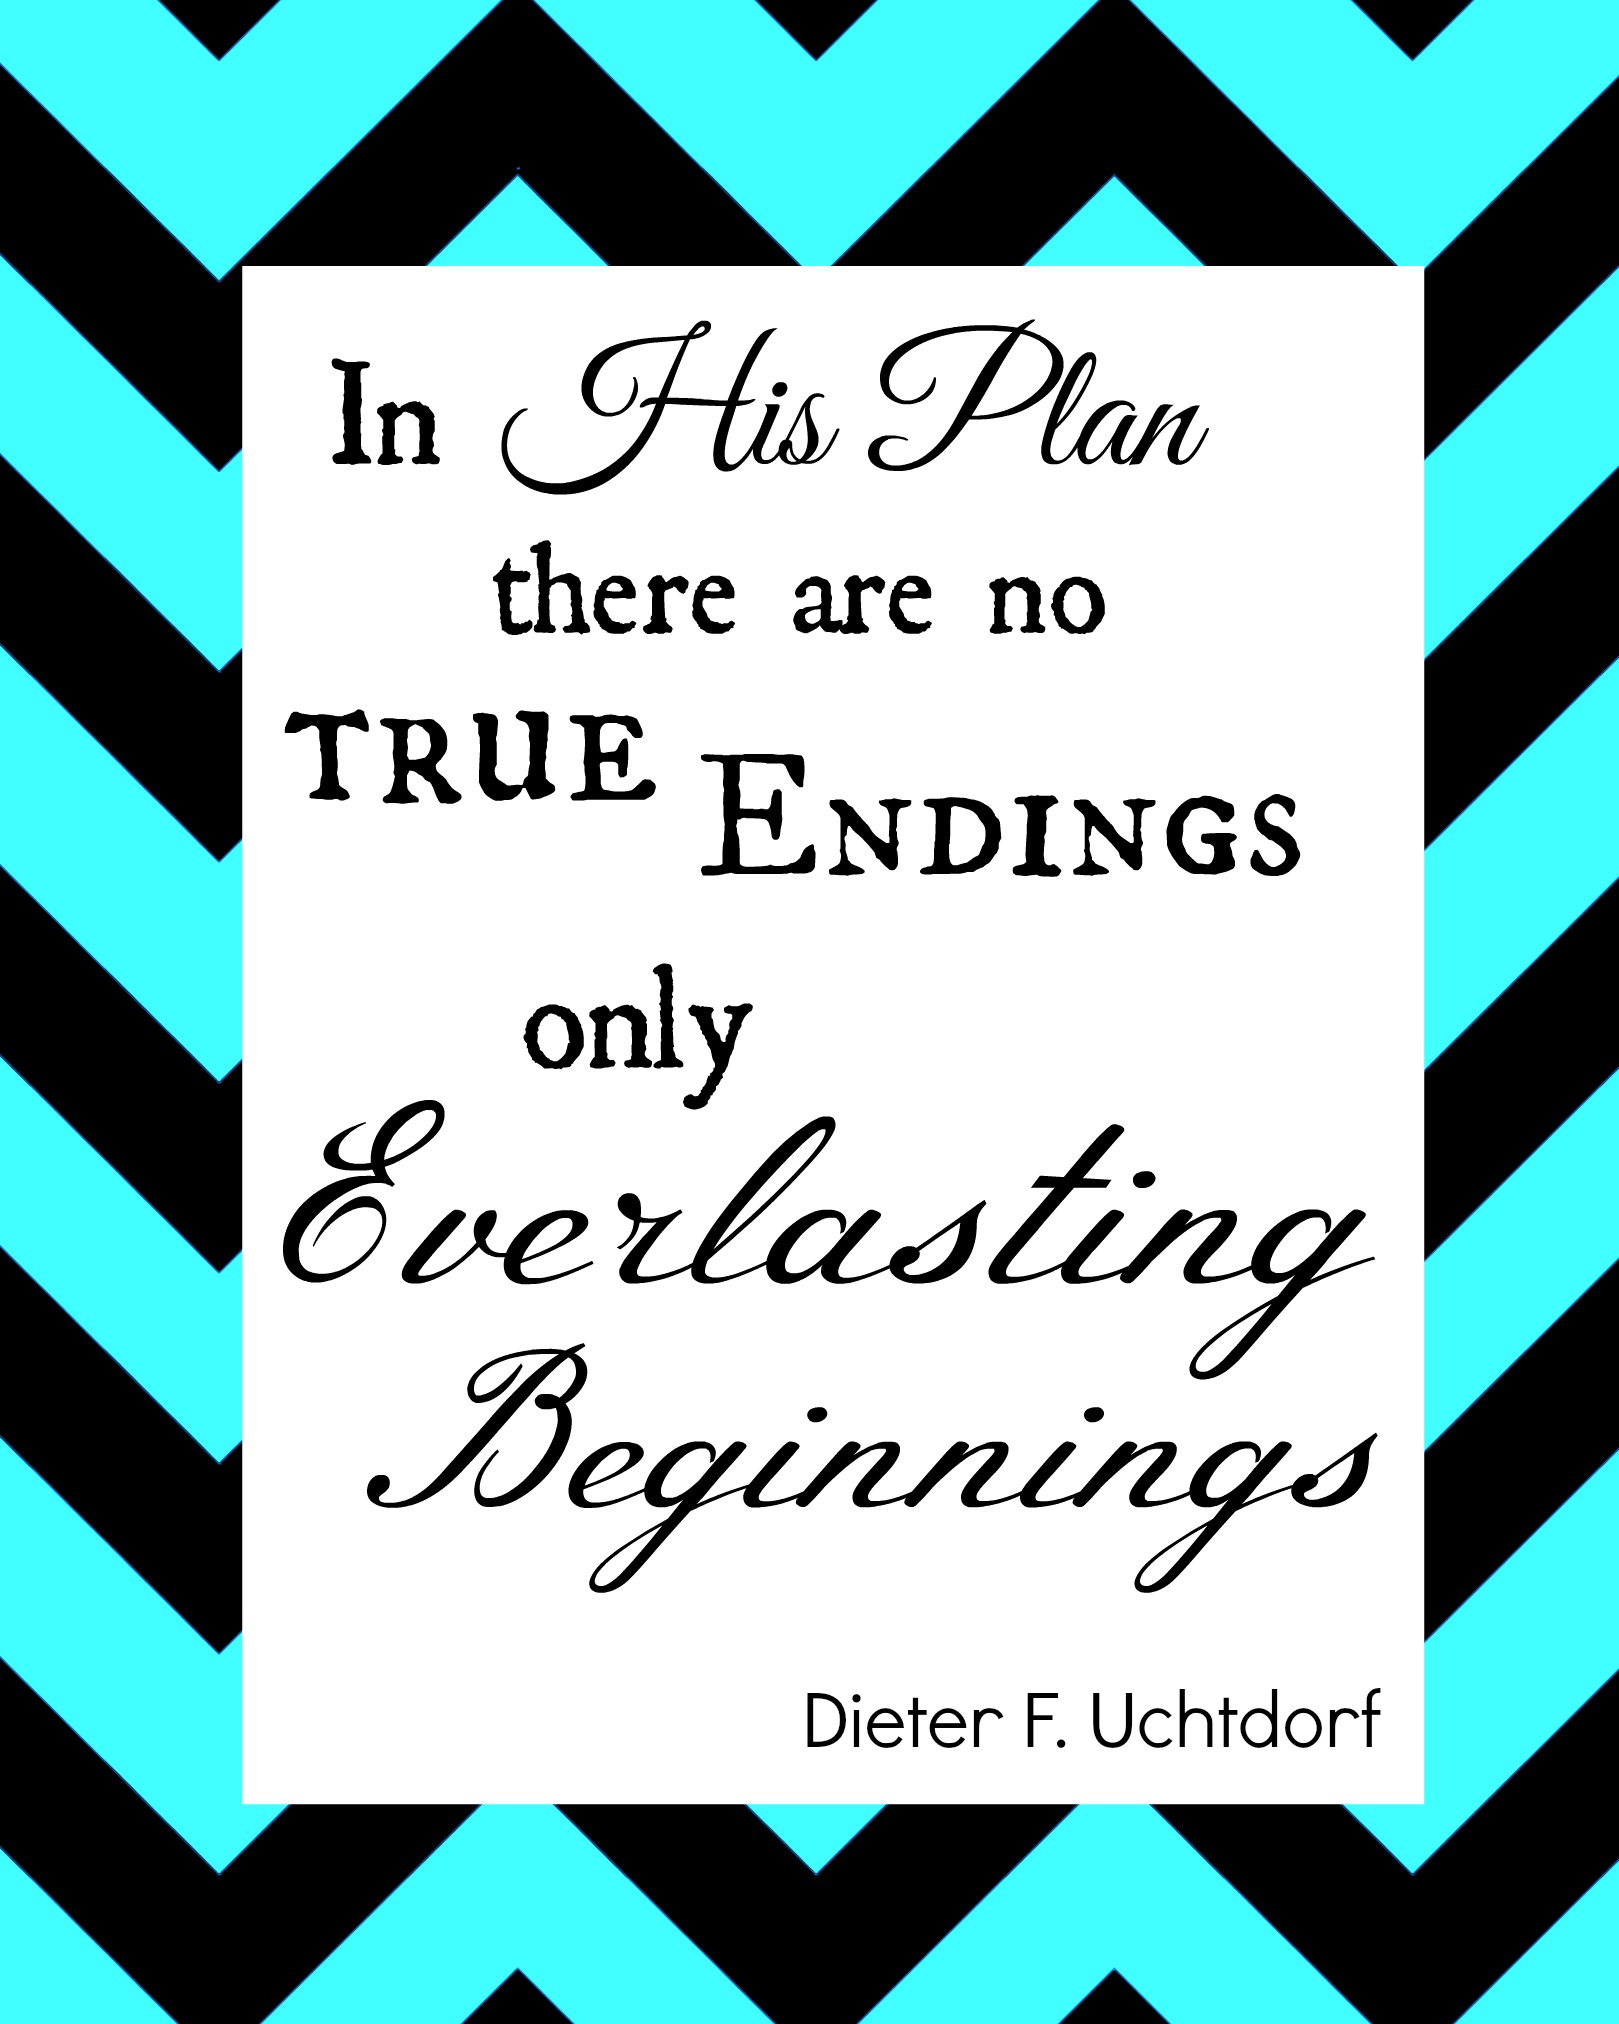 EverlastingBeginnings2